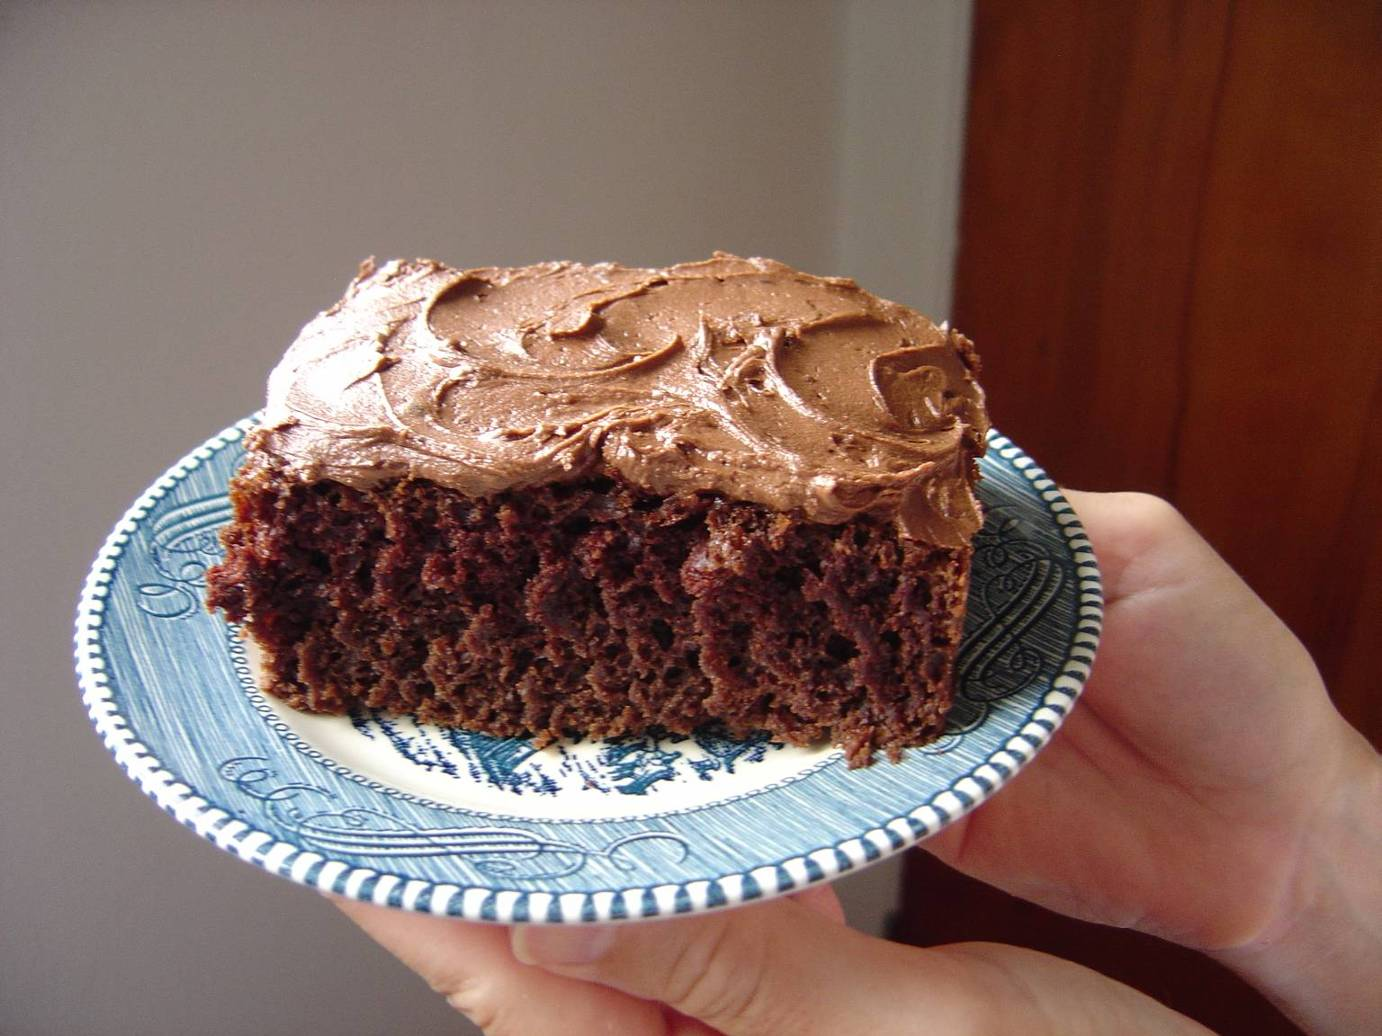 Sour Milk Chocolate Cake with Mocha-Fudge Icing